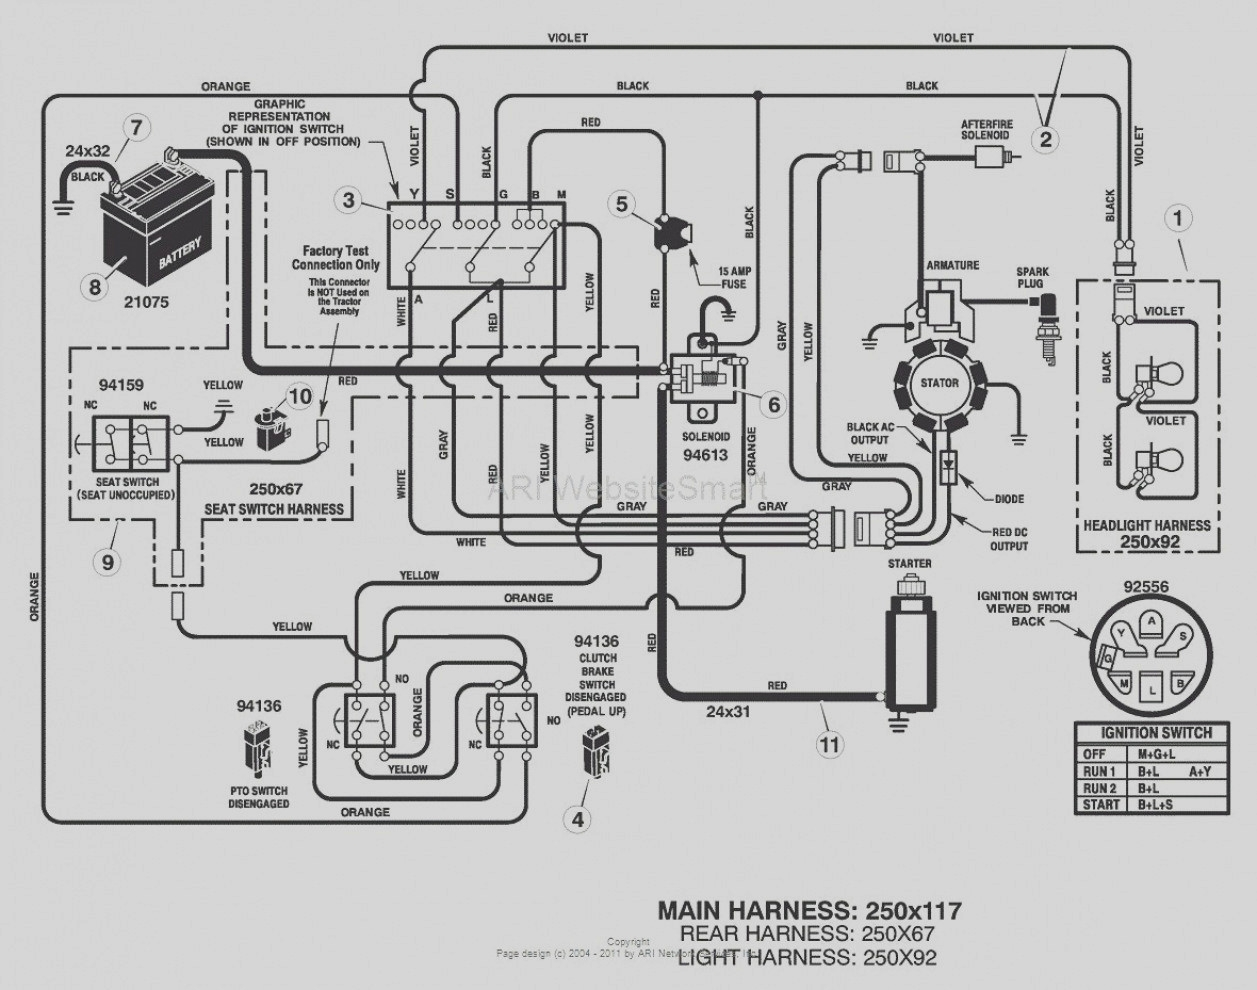 hight resolution of craftsman lawn tractor wiring diagram free wiring diagram wiring diagram craftsman 917 287480